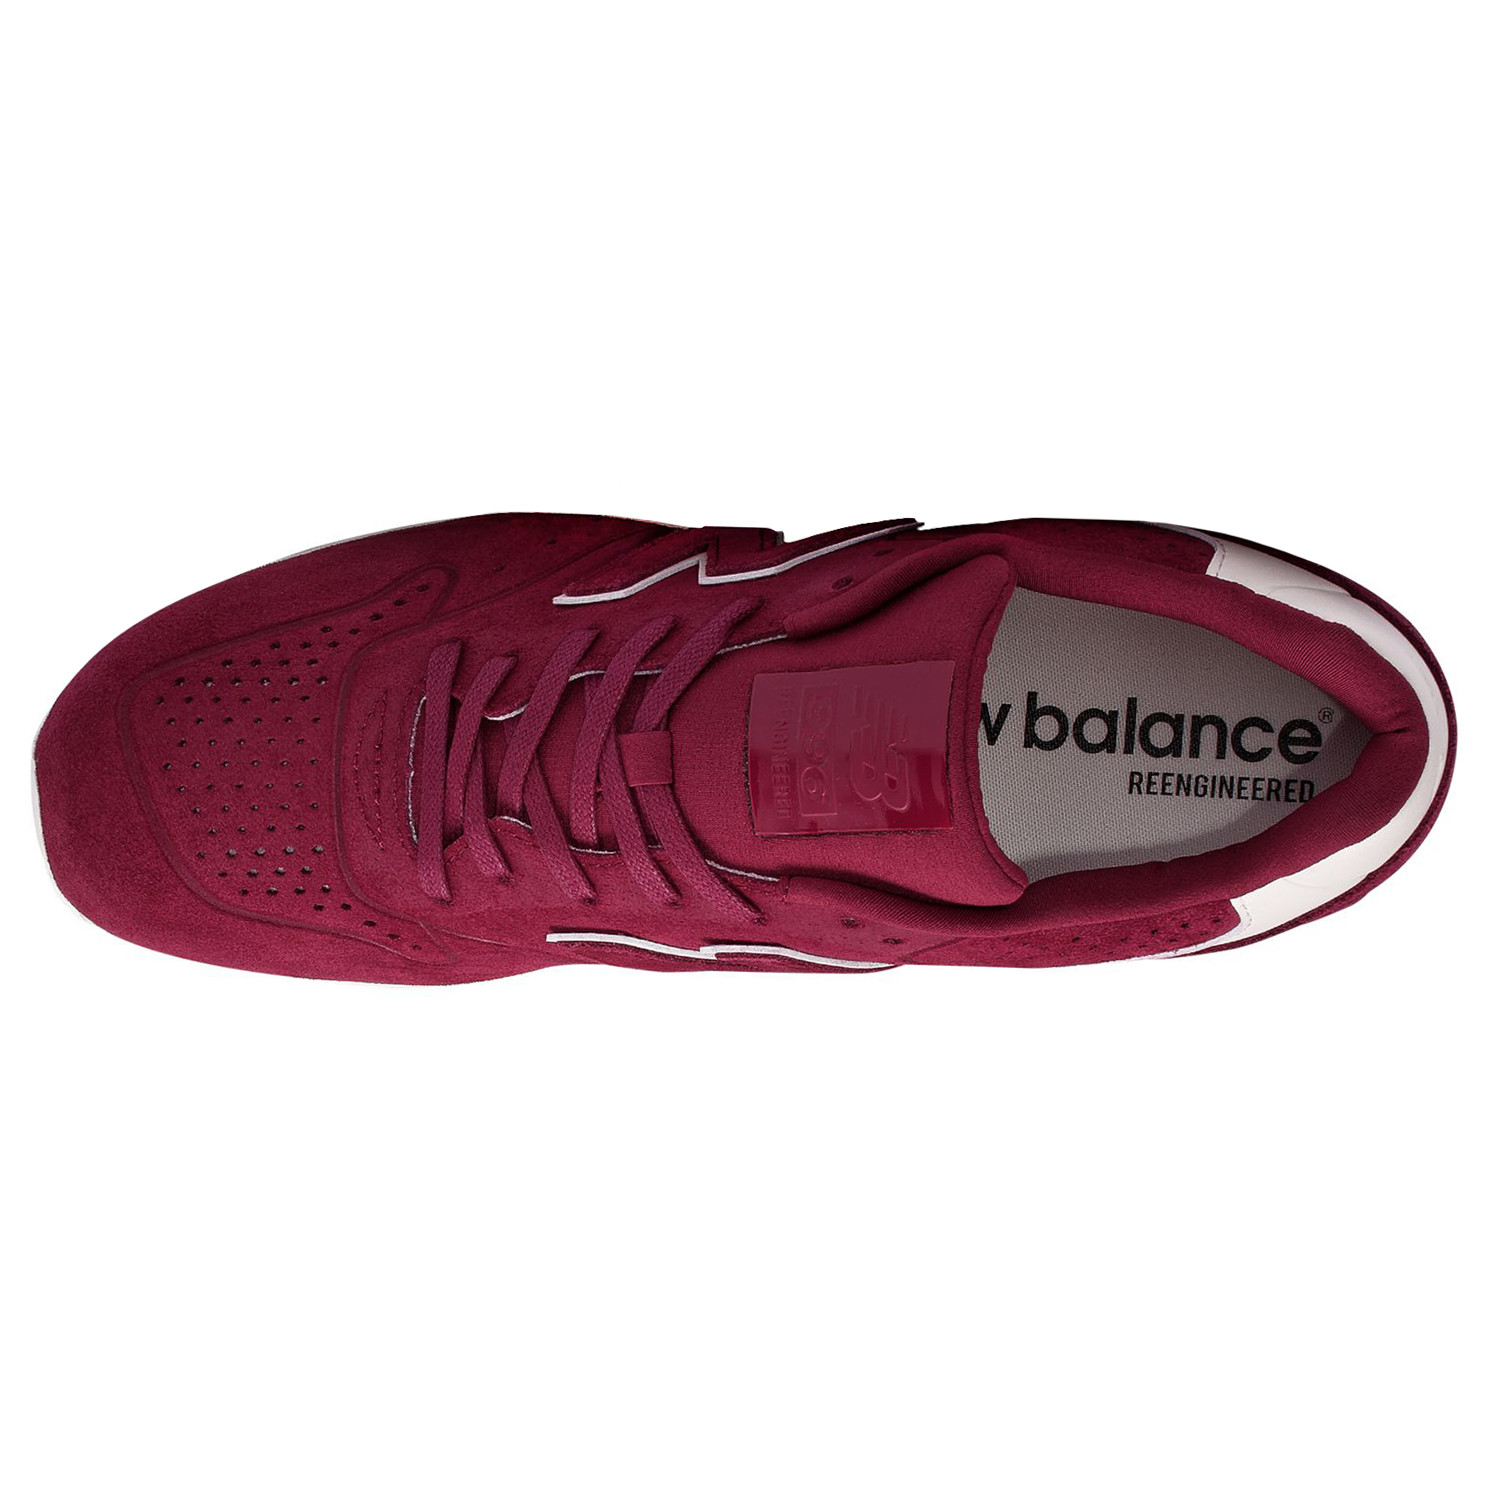 Basses Baskets Cher Mrl996 Homme Pas Rouge New Balance Chaussure Ong1qR8w